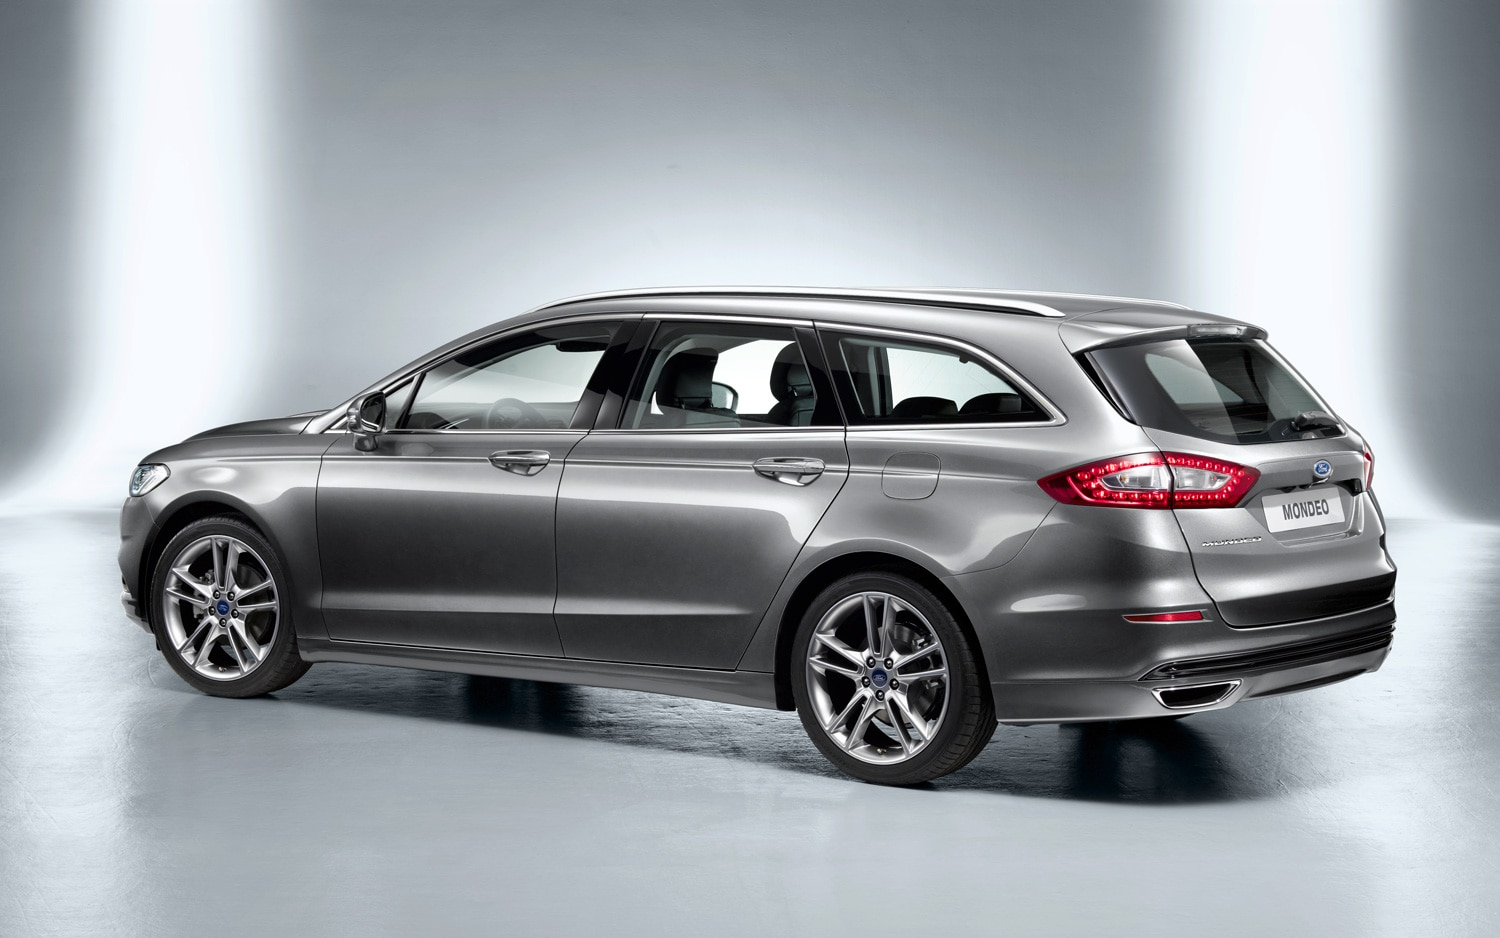 Eleven Station Wagons We Wish We Could Buy In The U S